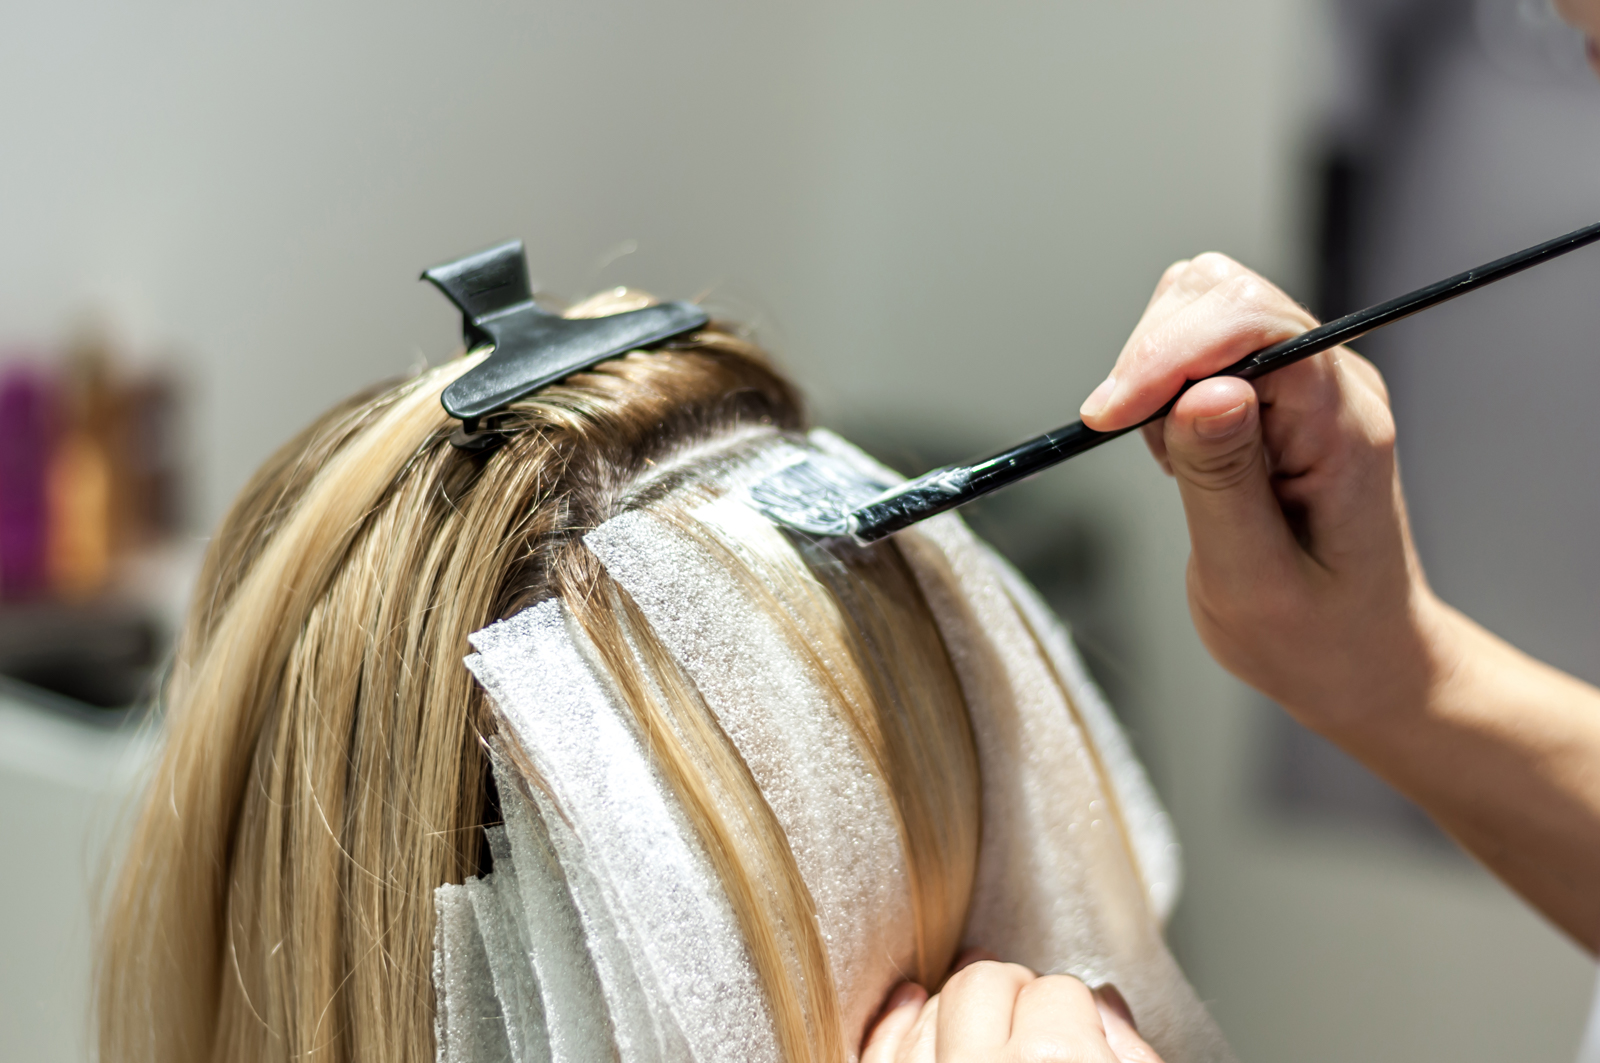 A woman having her roots done at the hairdressers.